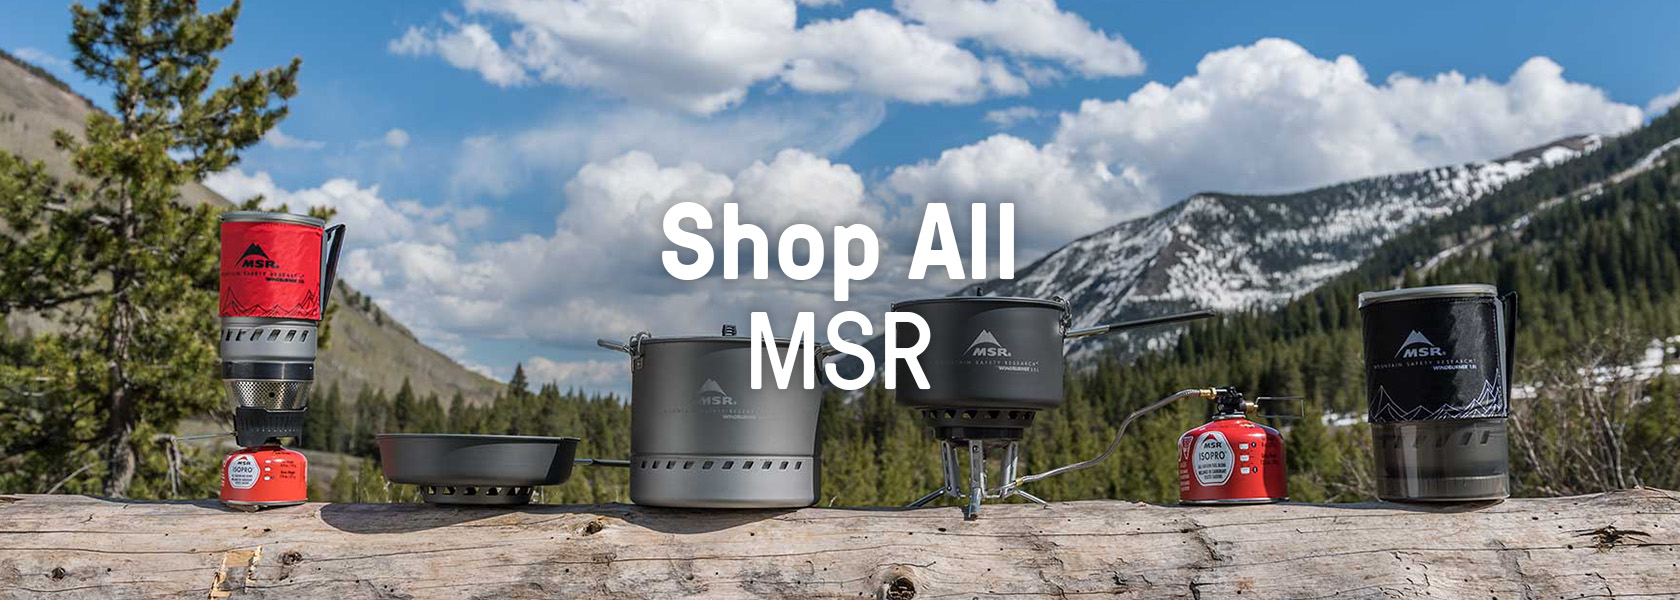 A range of MSR outdoor kitchen equipment standing on a log.